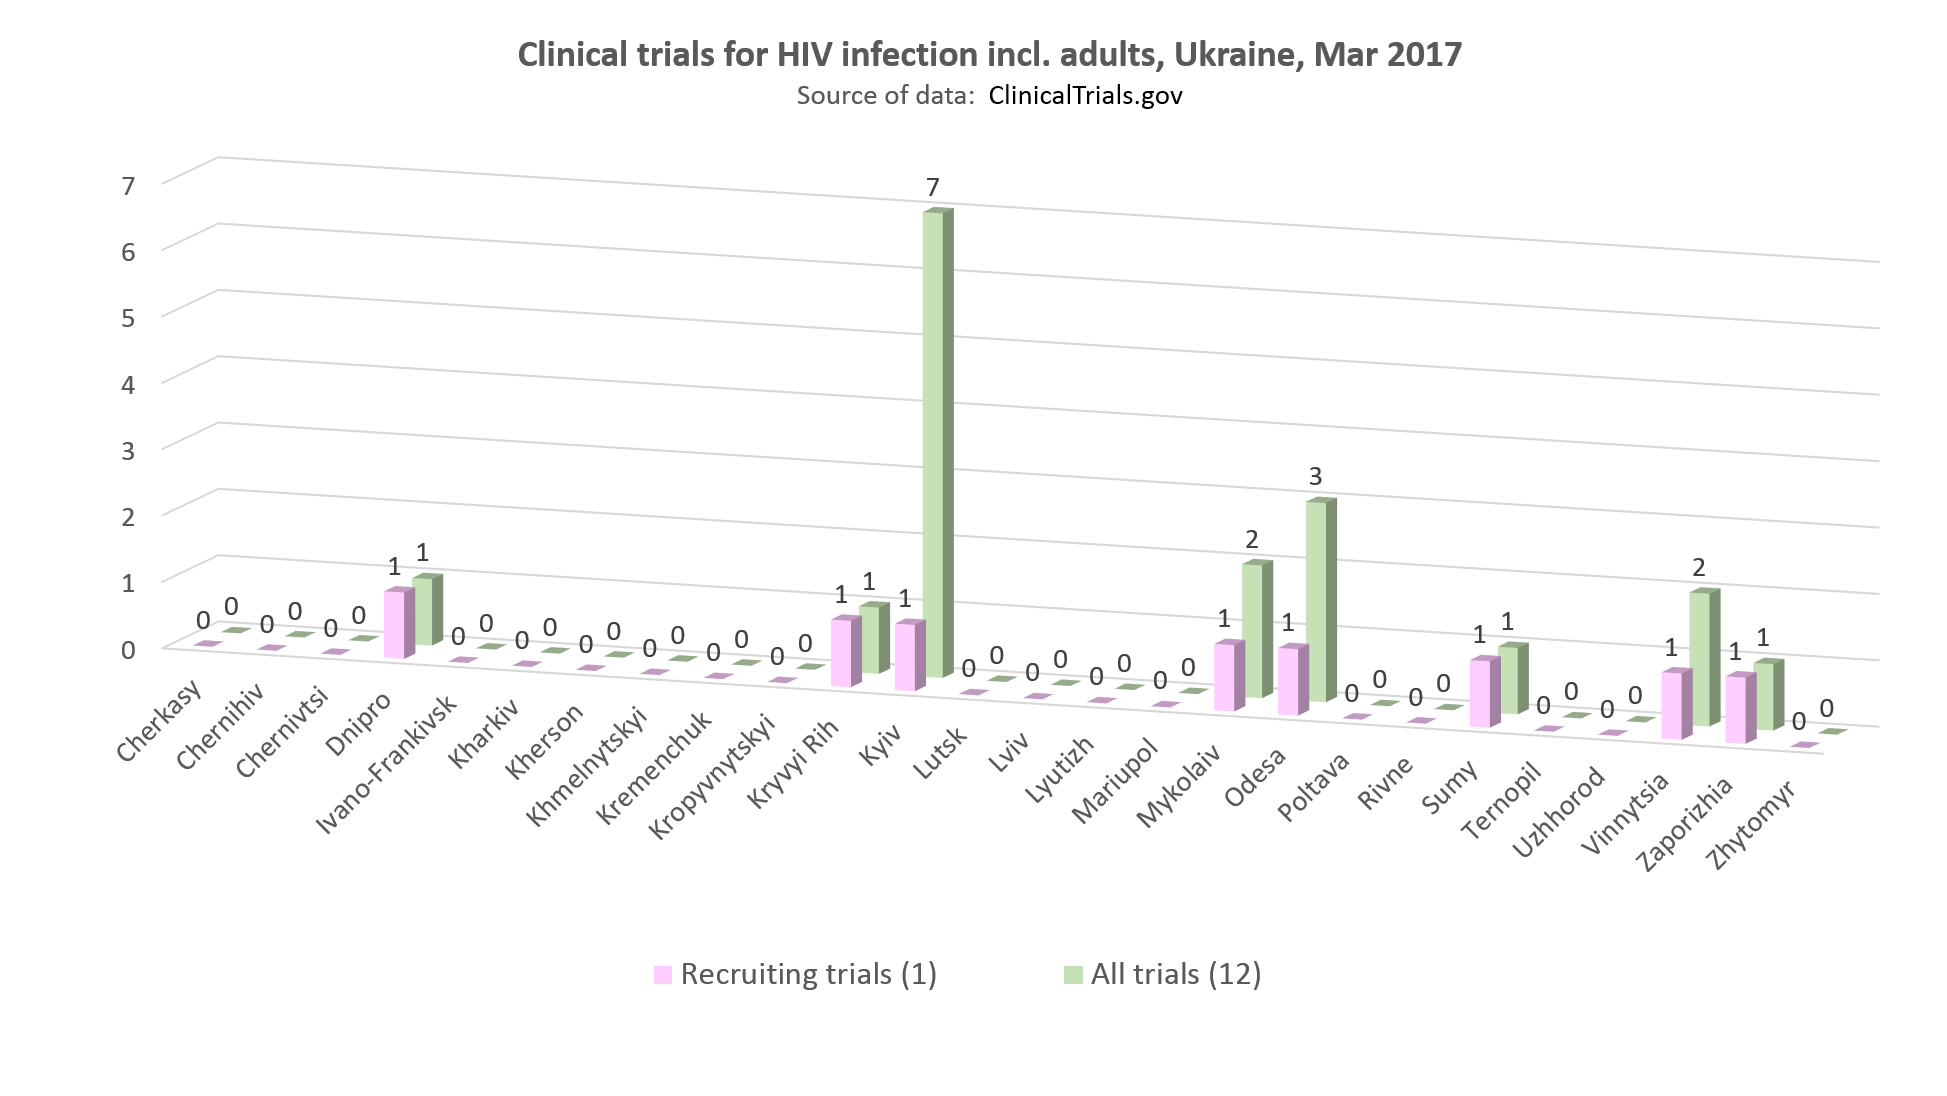 clinical trials for HIV infection incl adults in Ukraine